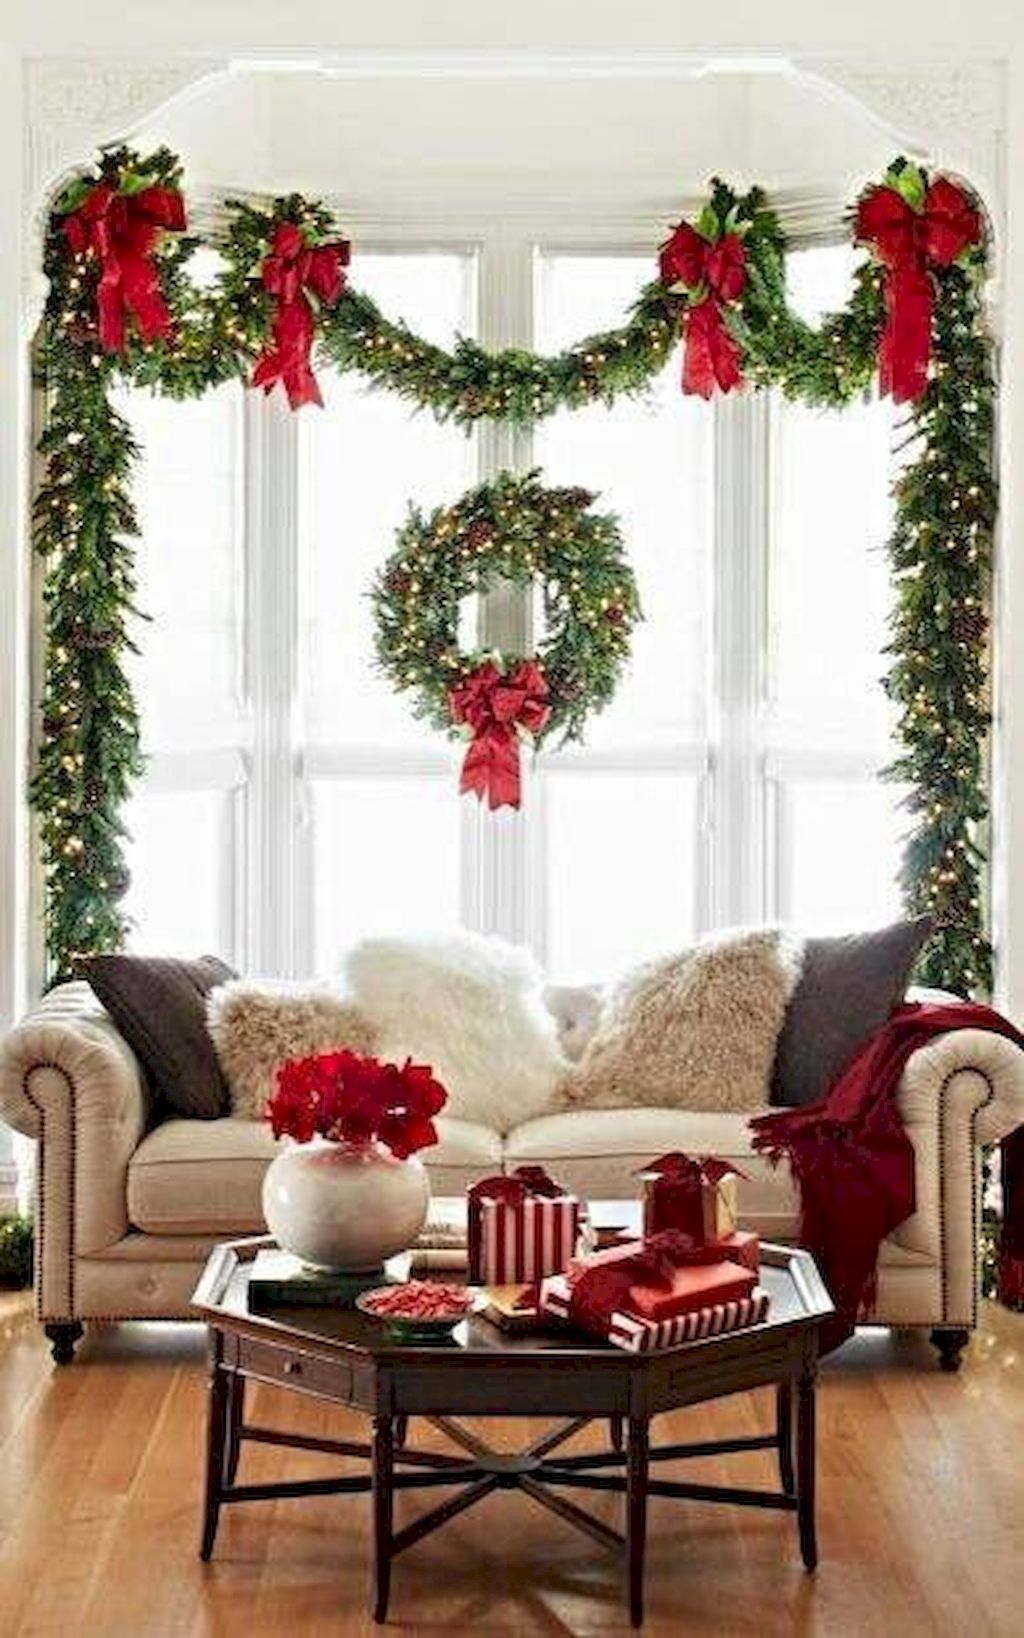 25 awesome christmas decorations apartment ideas 23